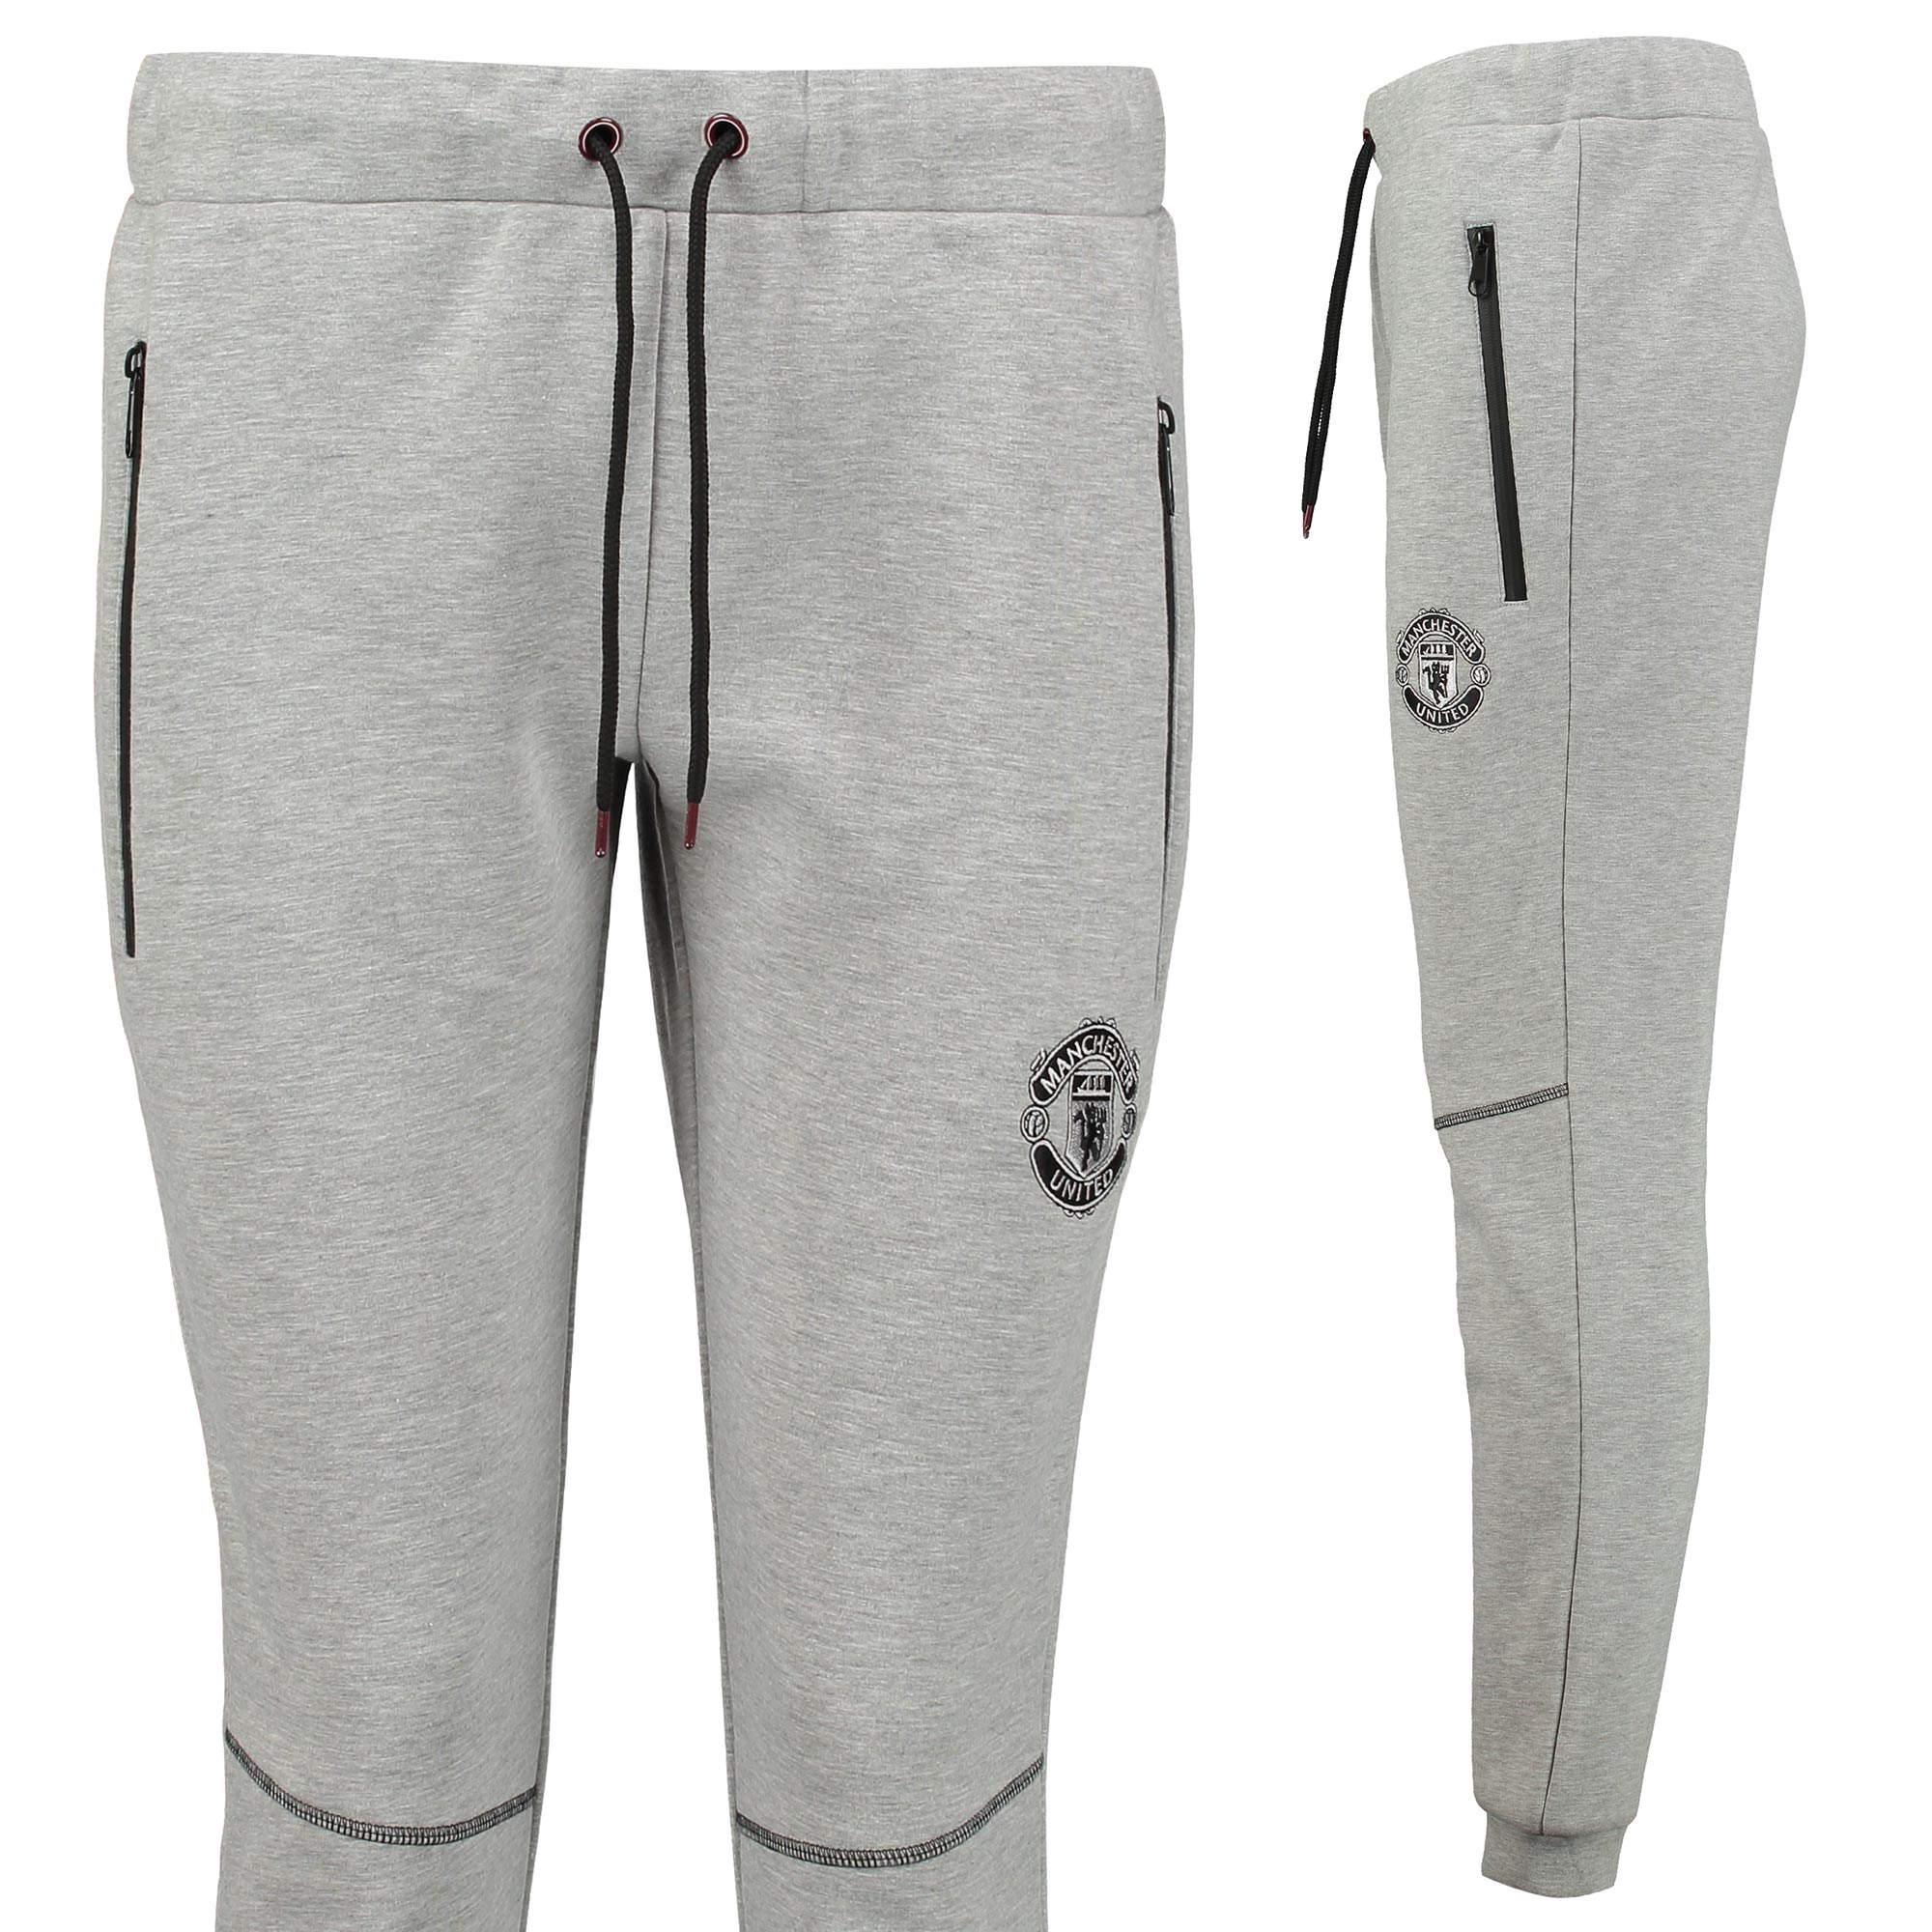 Manchester United Fleece Joggers - Grey Marl - Womens